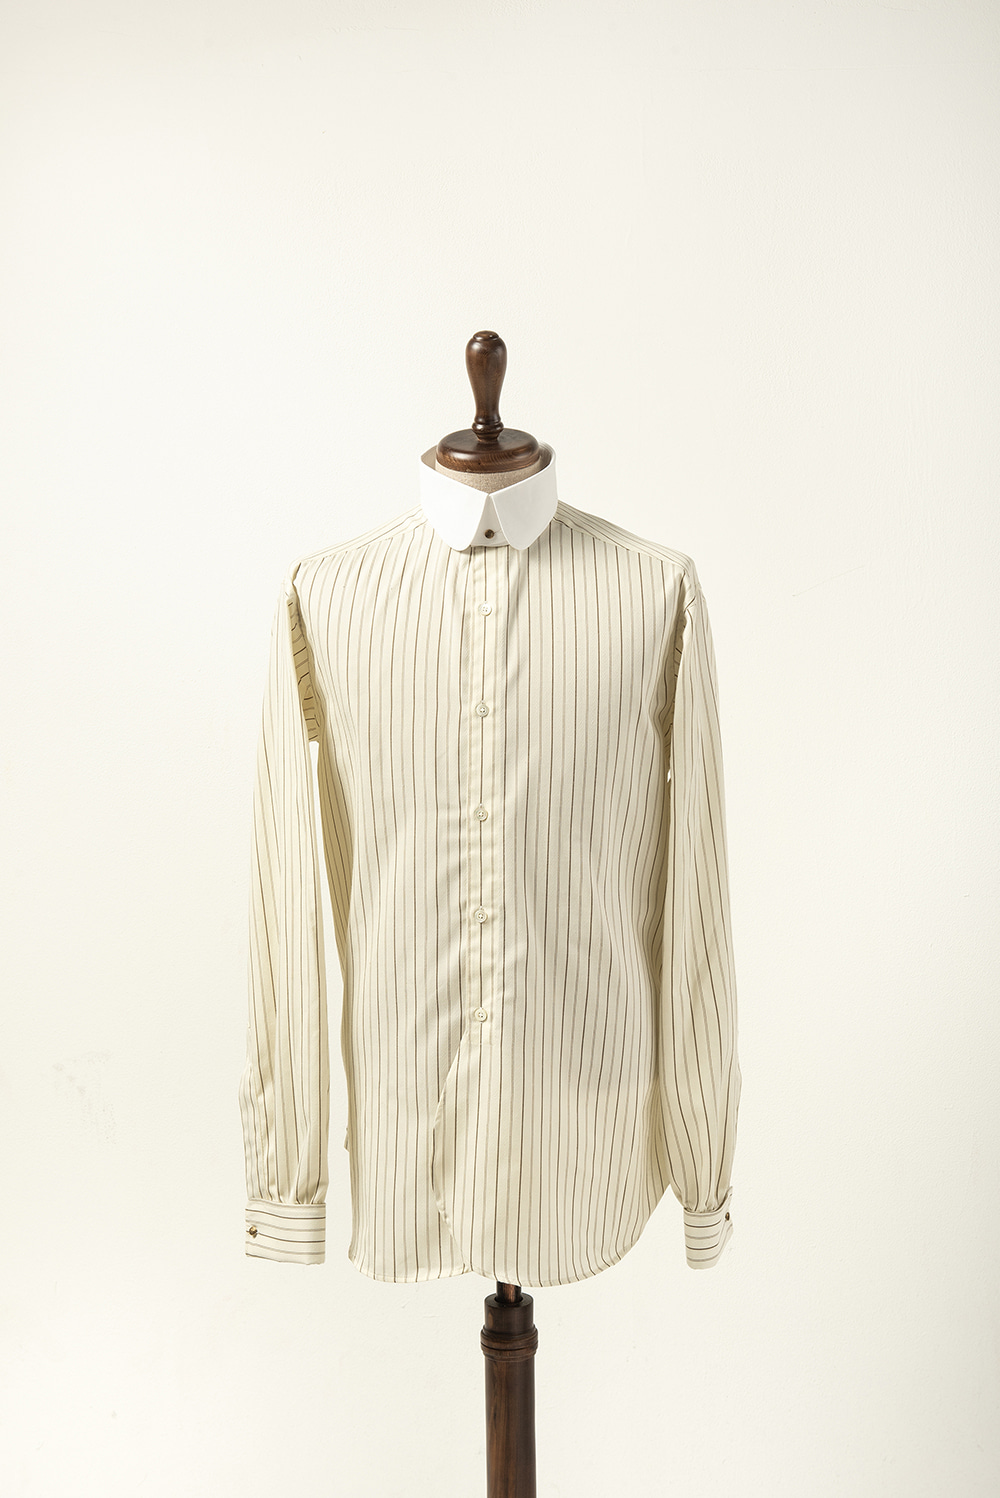 1918 Detachable Shirts